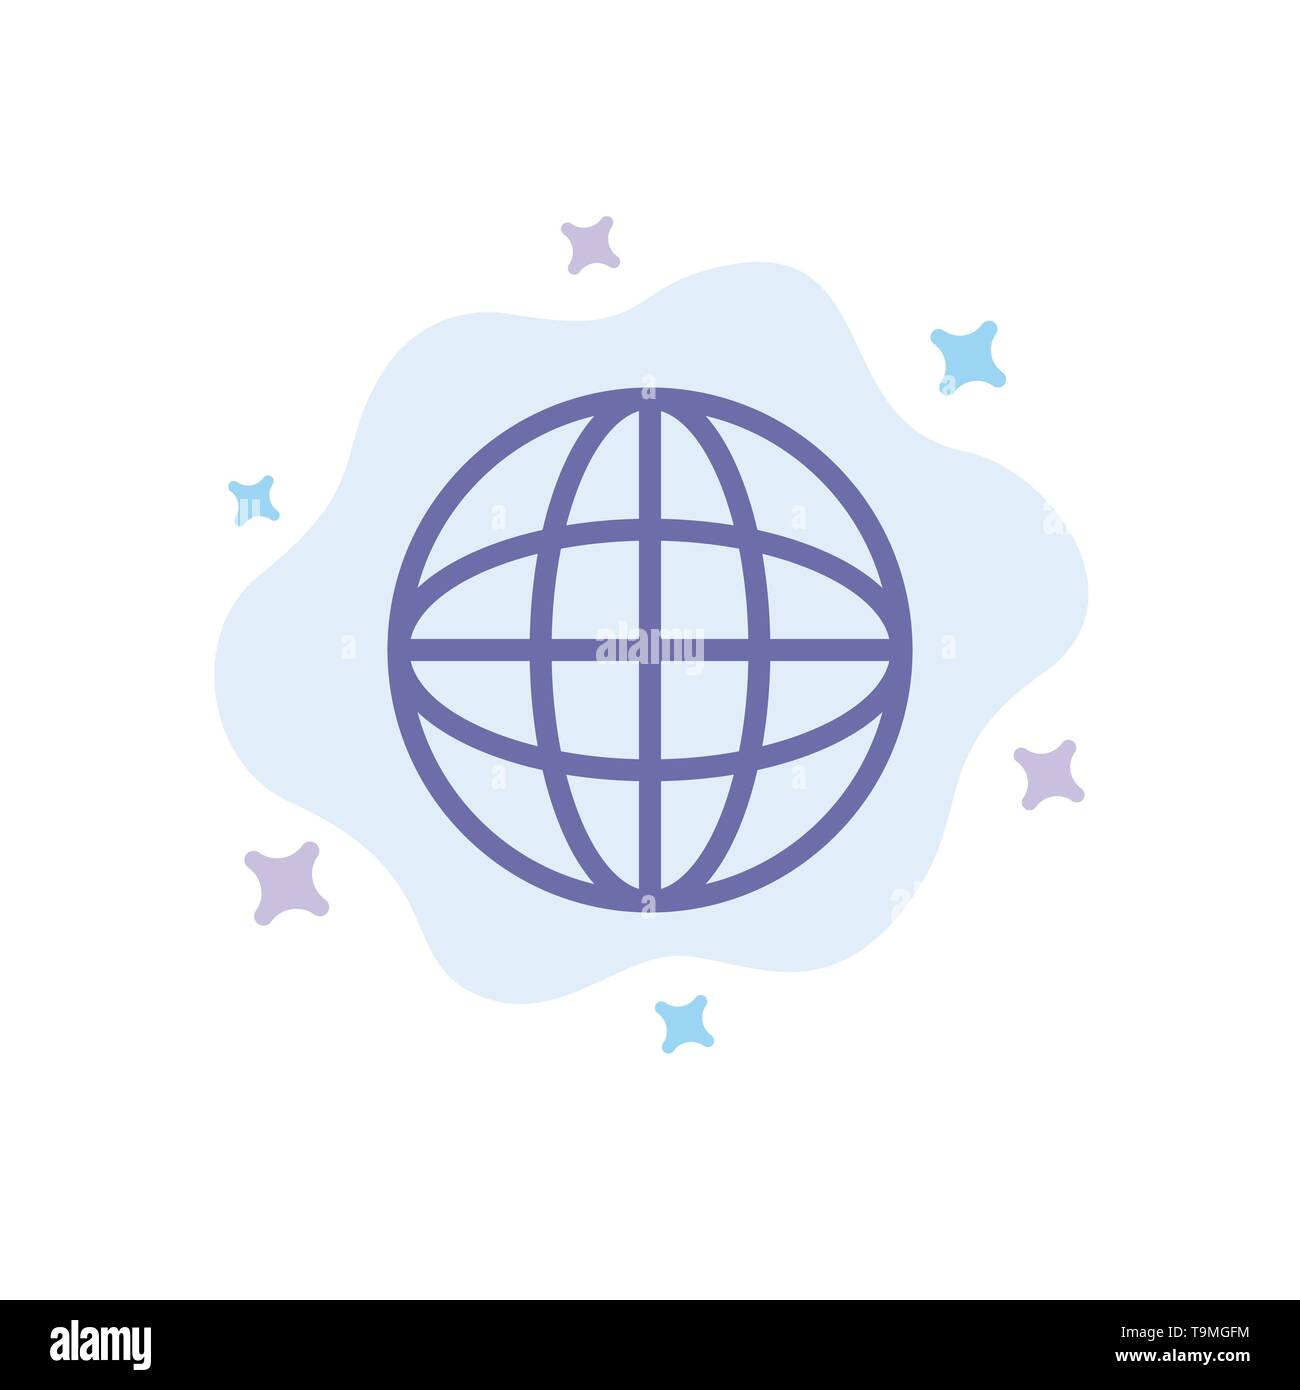 World, Globe, Internet, Education Blue Icon on Abstract Cloud Background - Stock Image